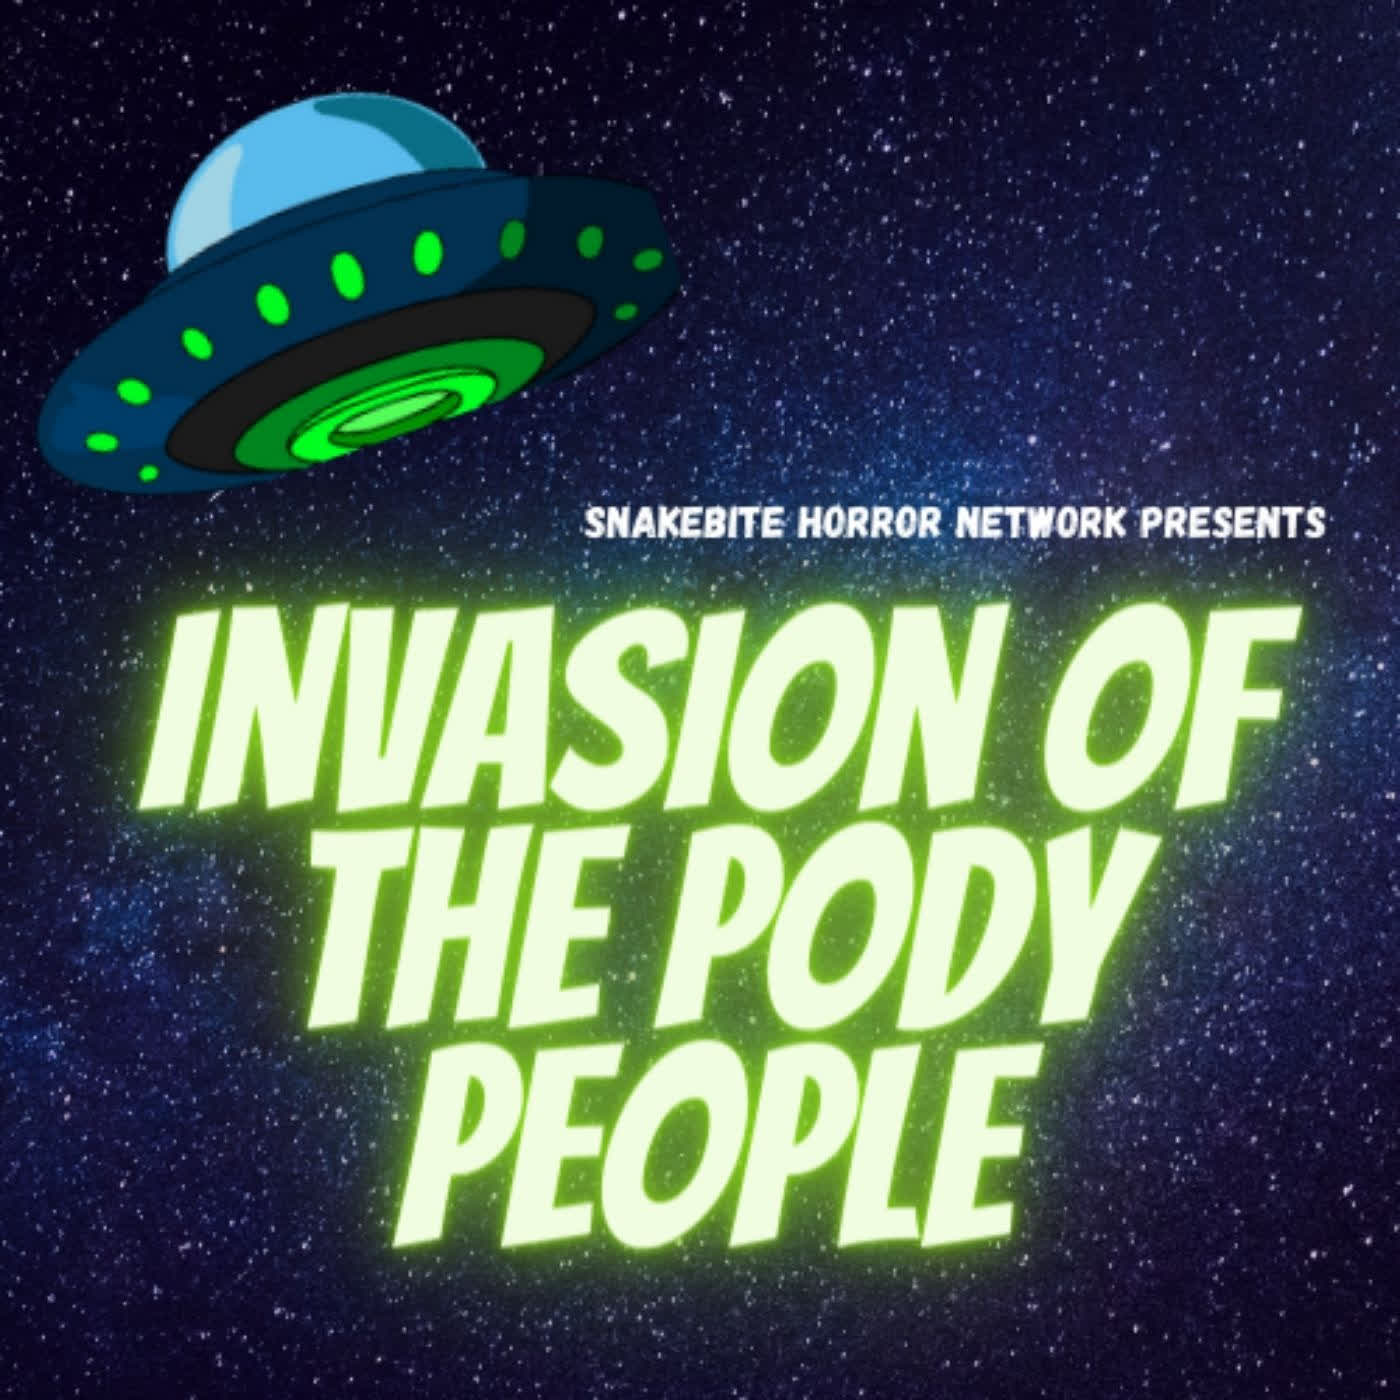 Invasion of the pody people - Island of Lost Pods